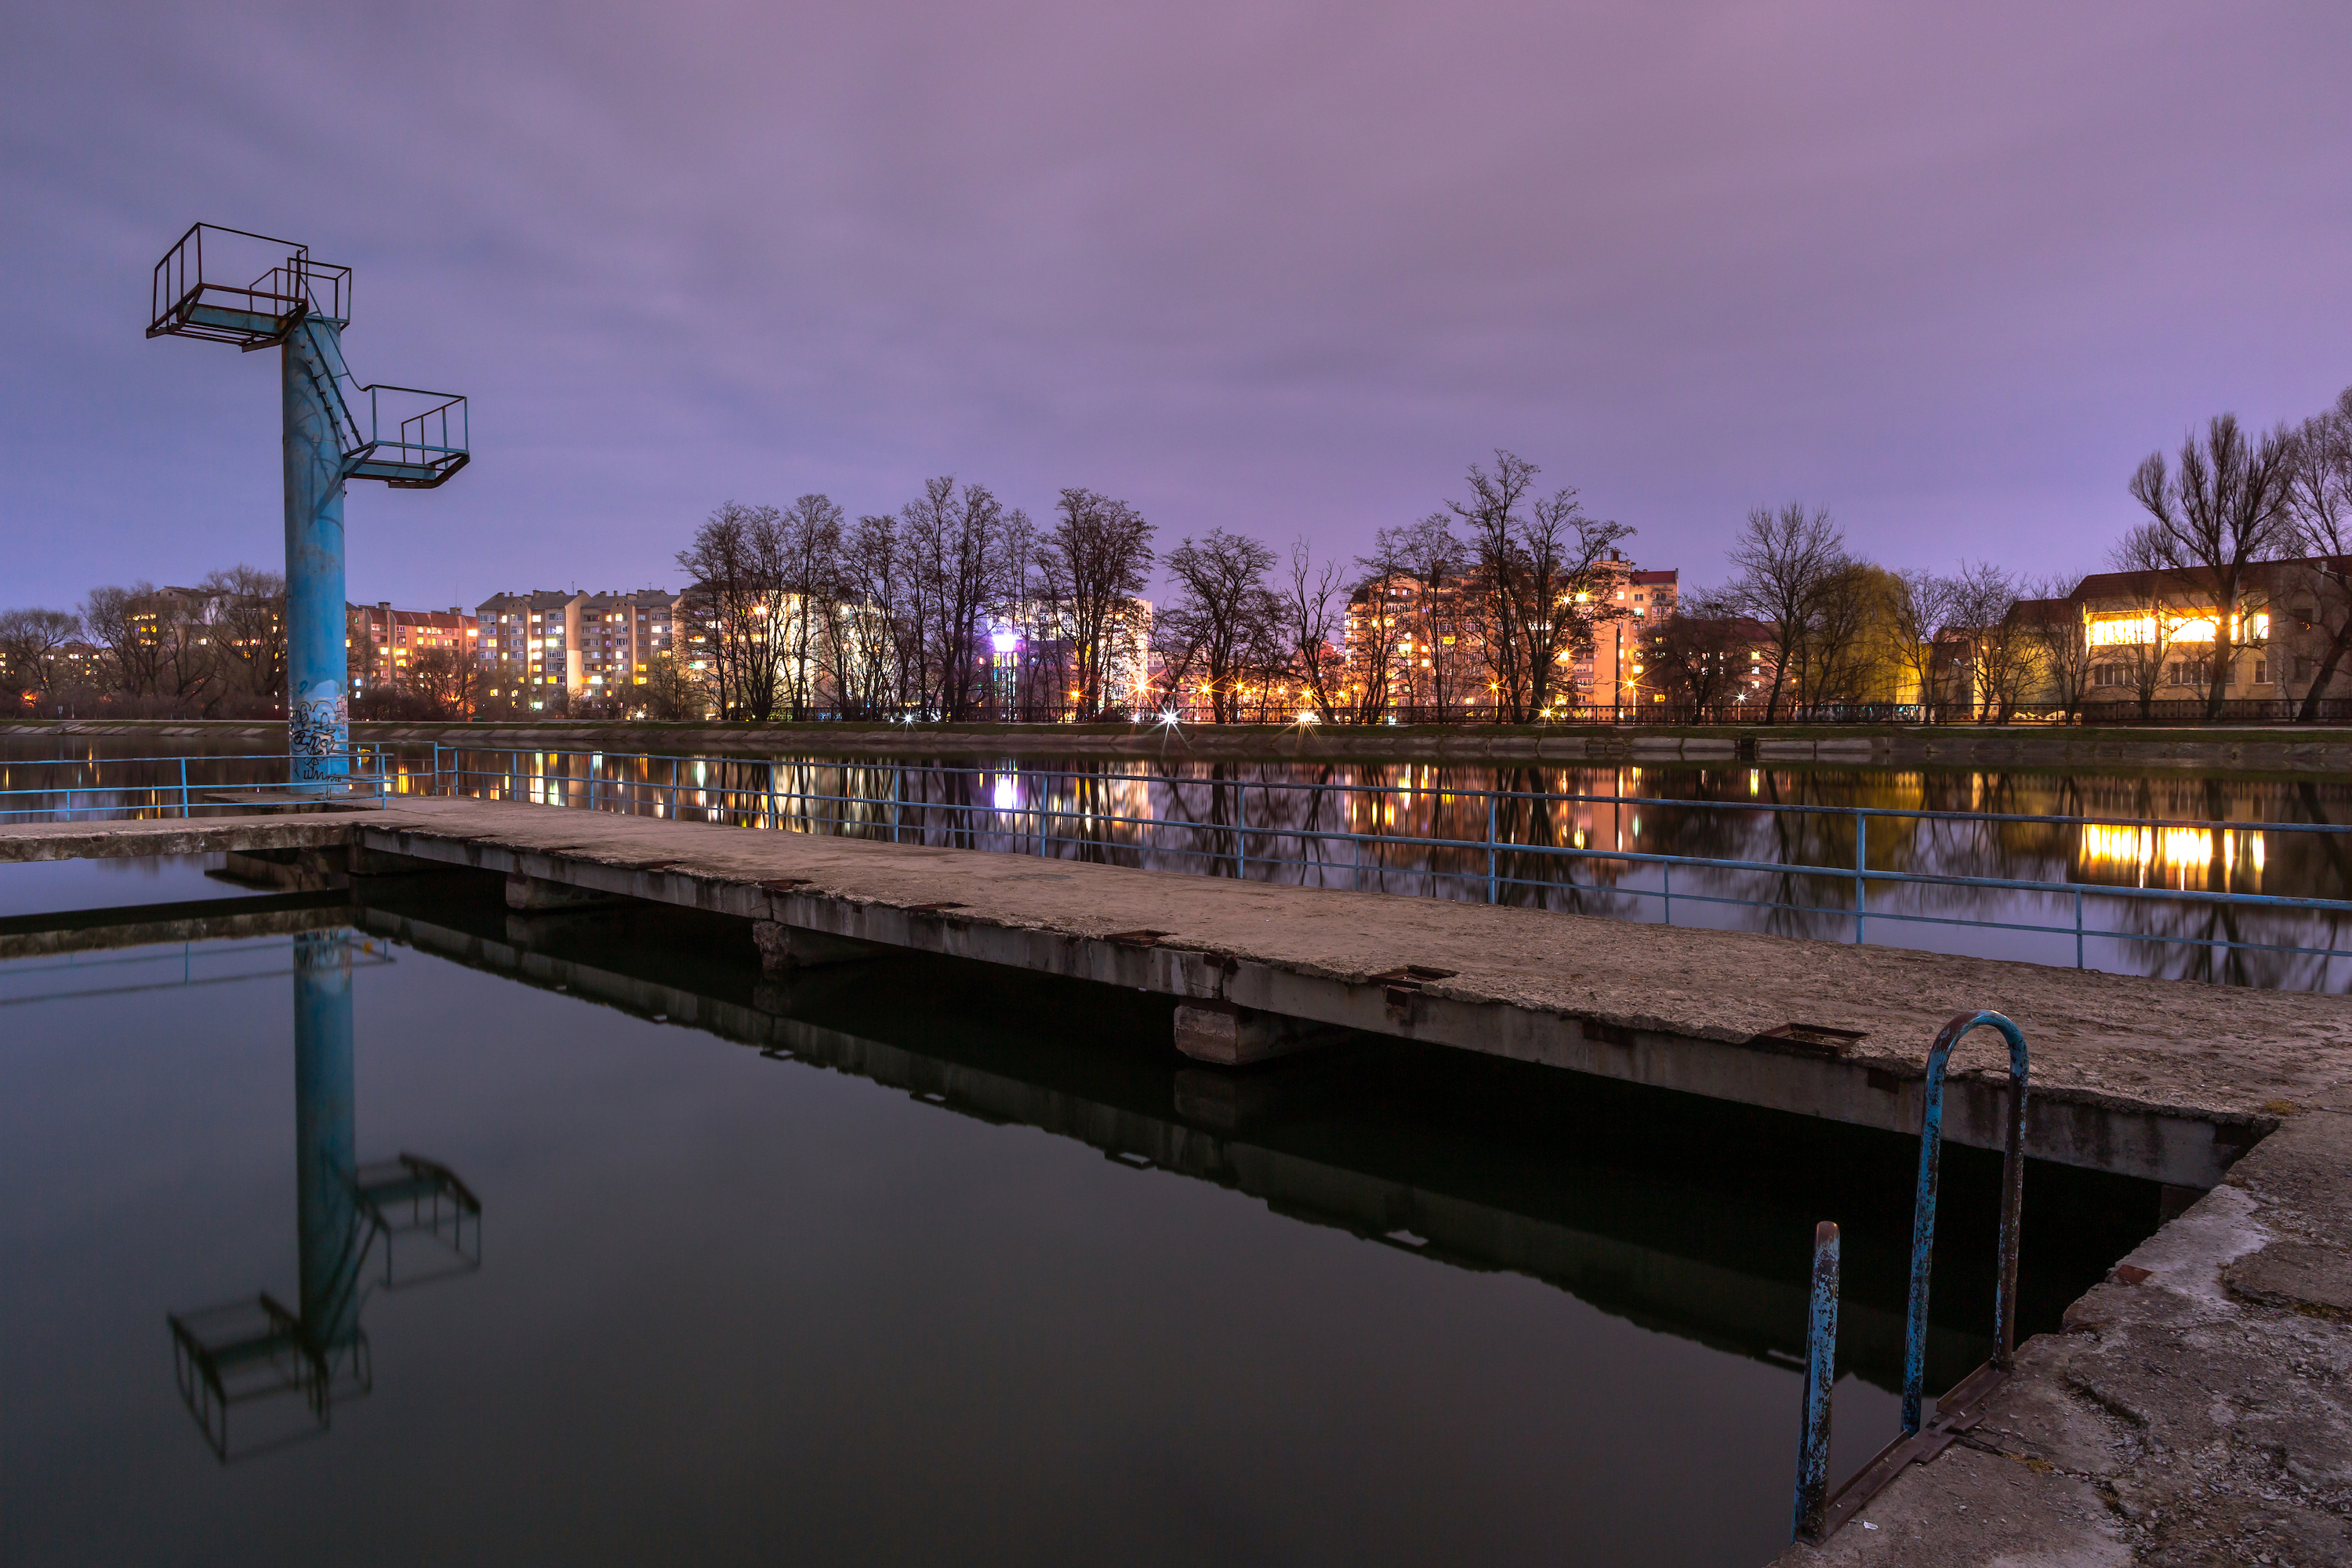 View on the lake with swimming area at night example image 1